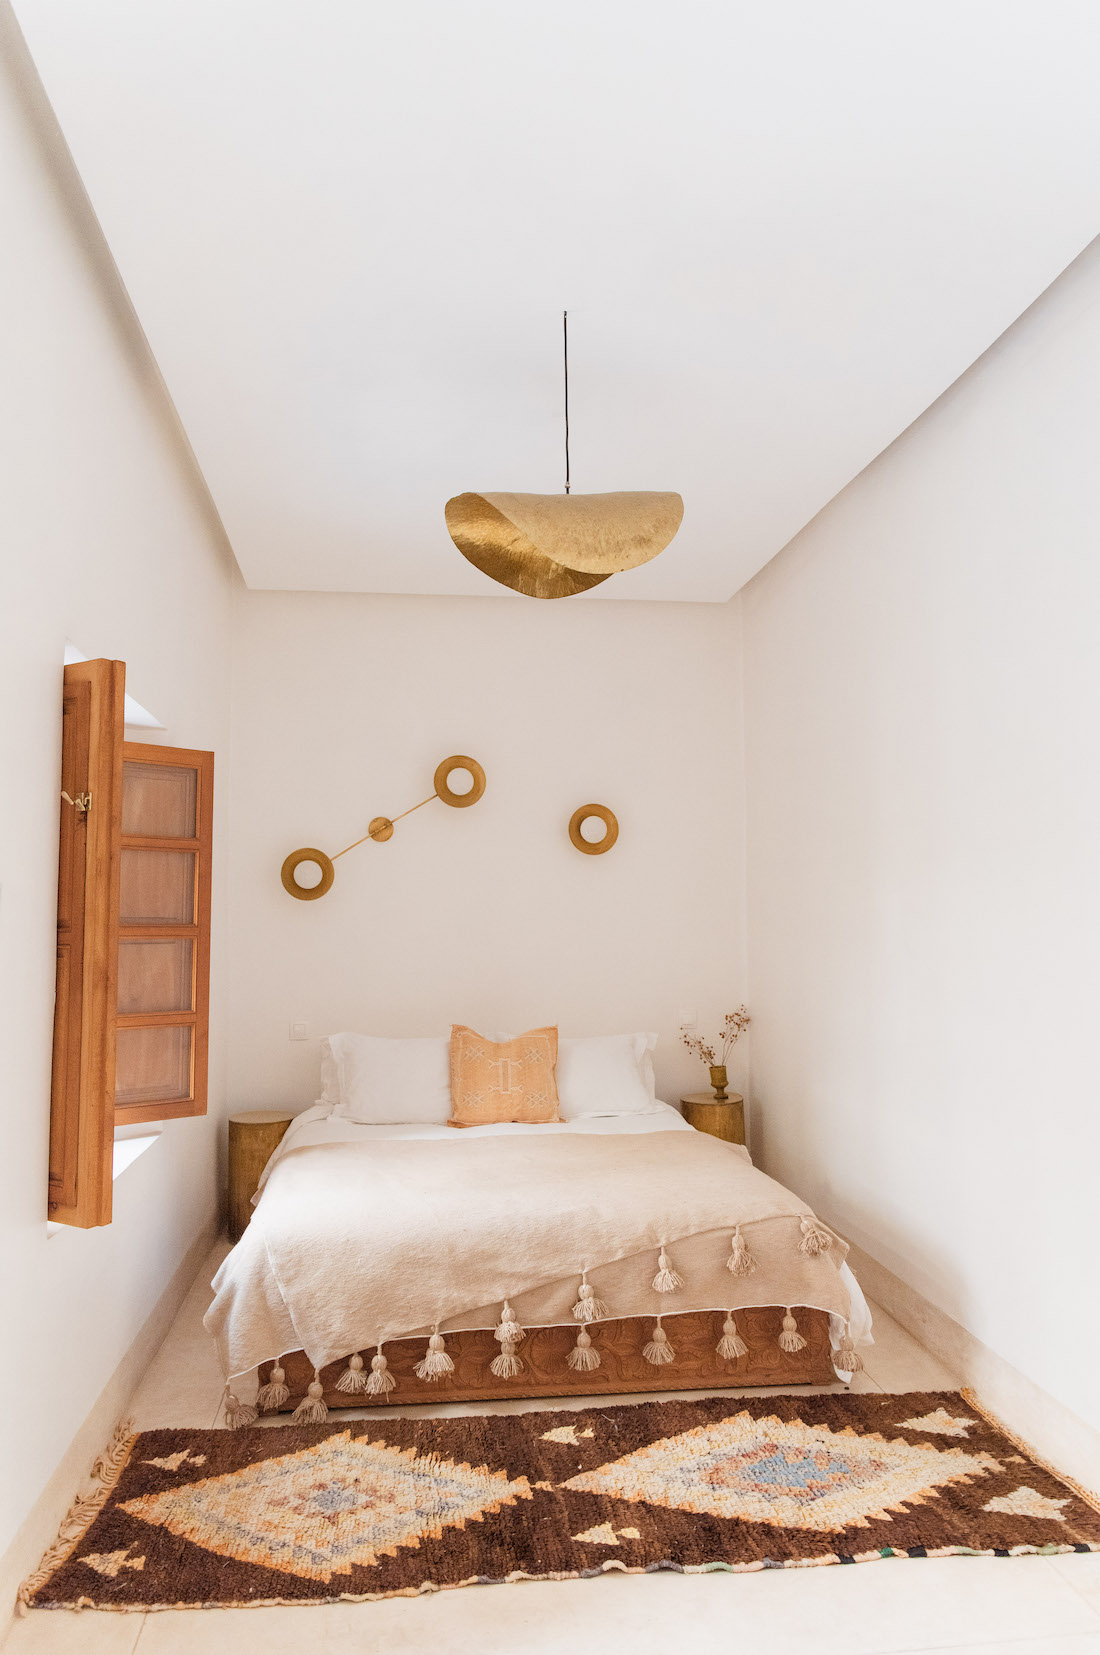 Bedroom styled with Moroccan homewares from Beni Kesh